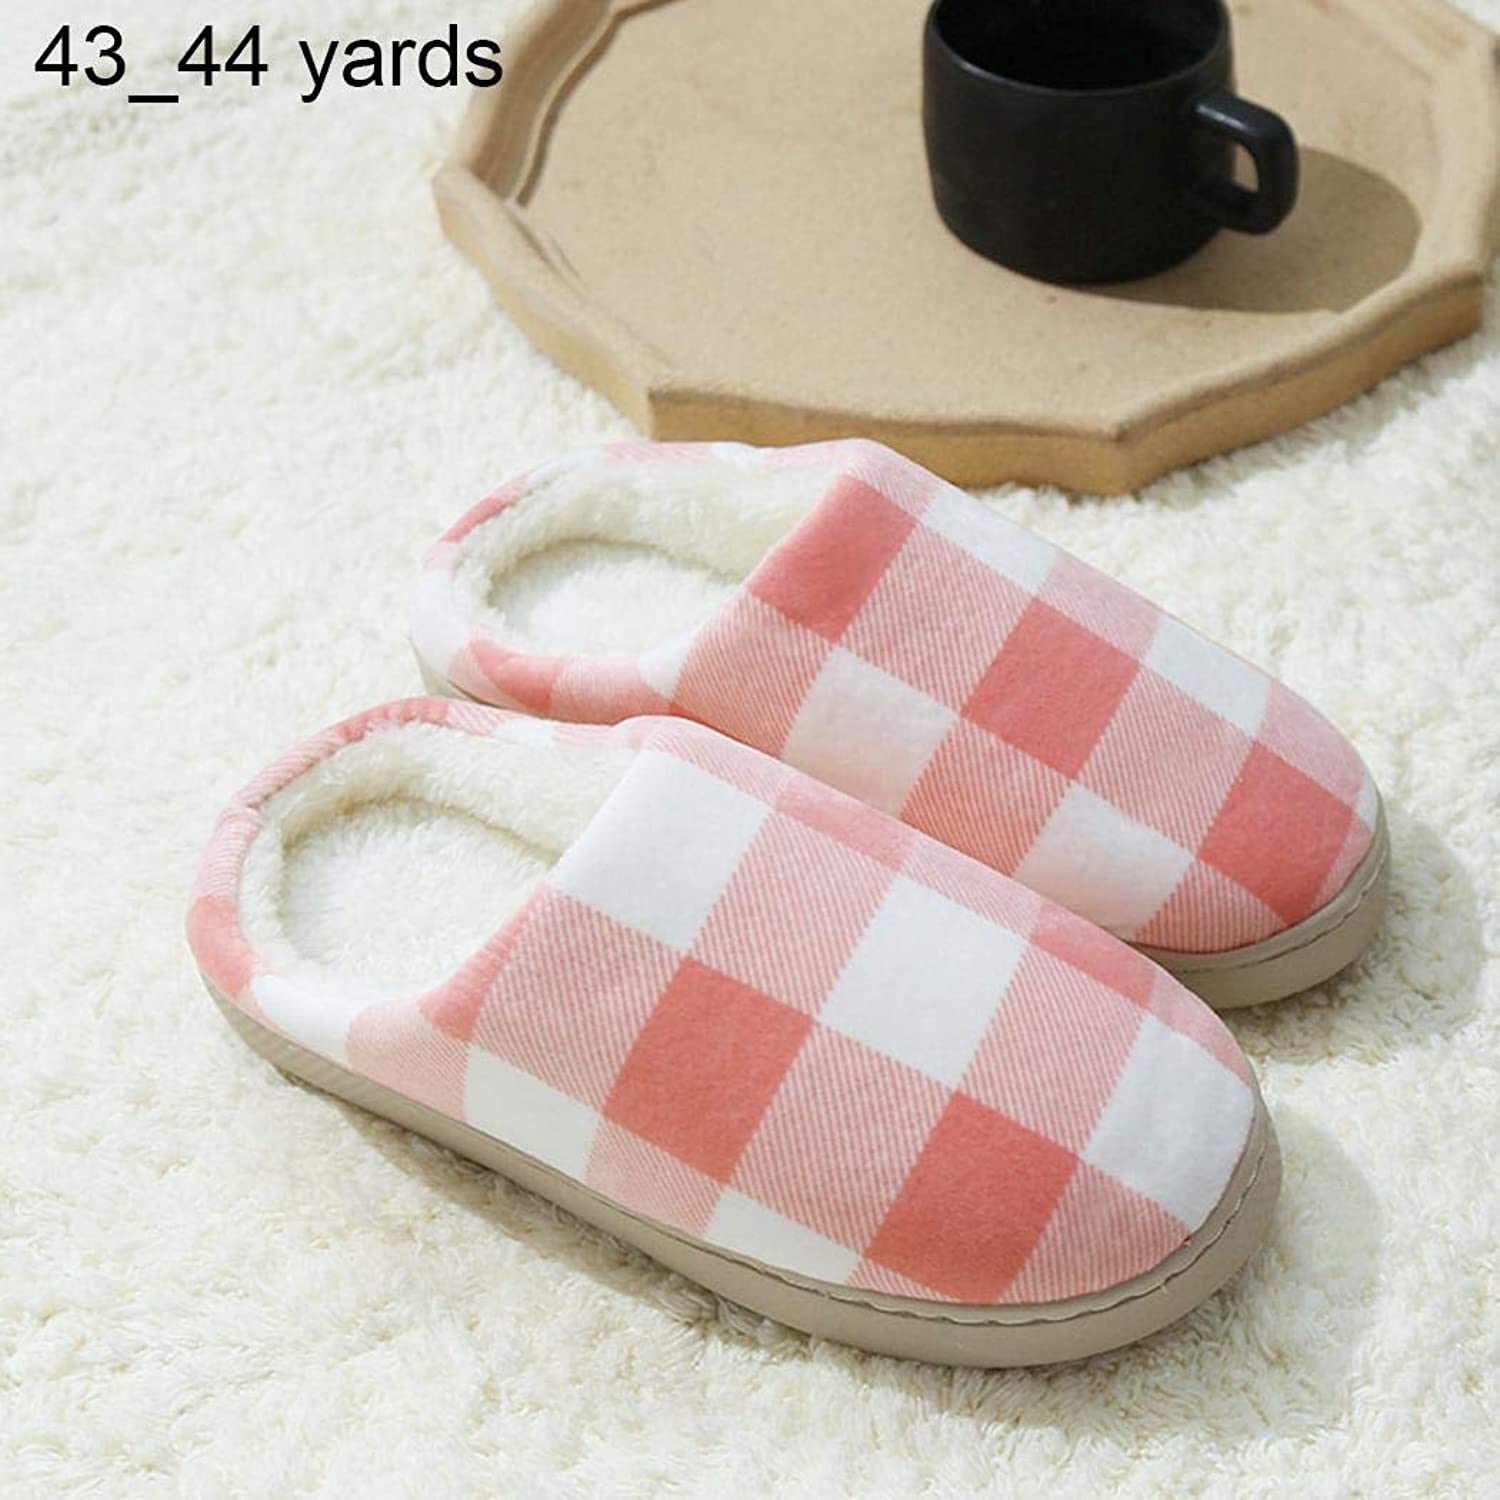 Idomeo Unisex Plaid Pattern Comfortable Warm Slippers Winter shoes Slippers